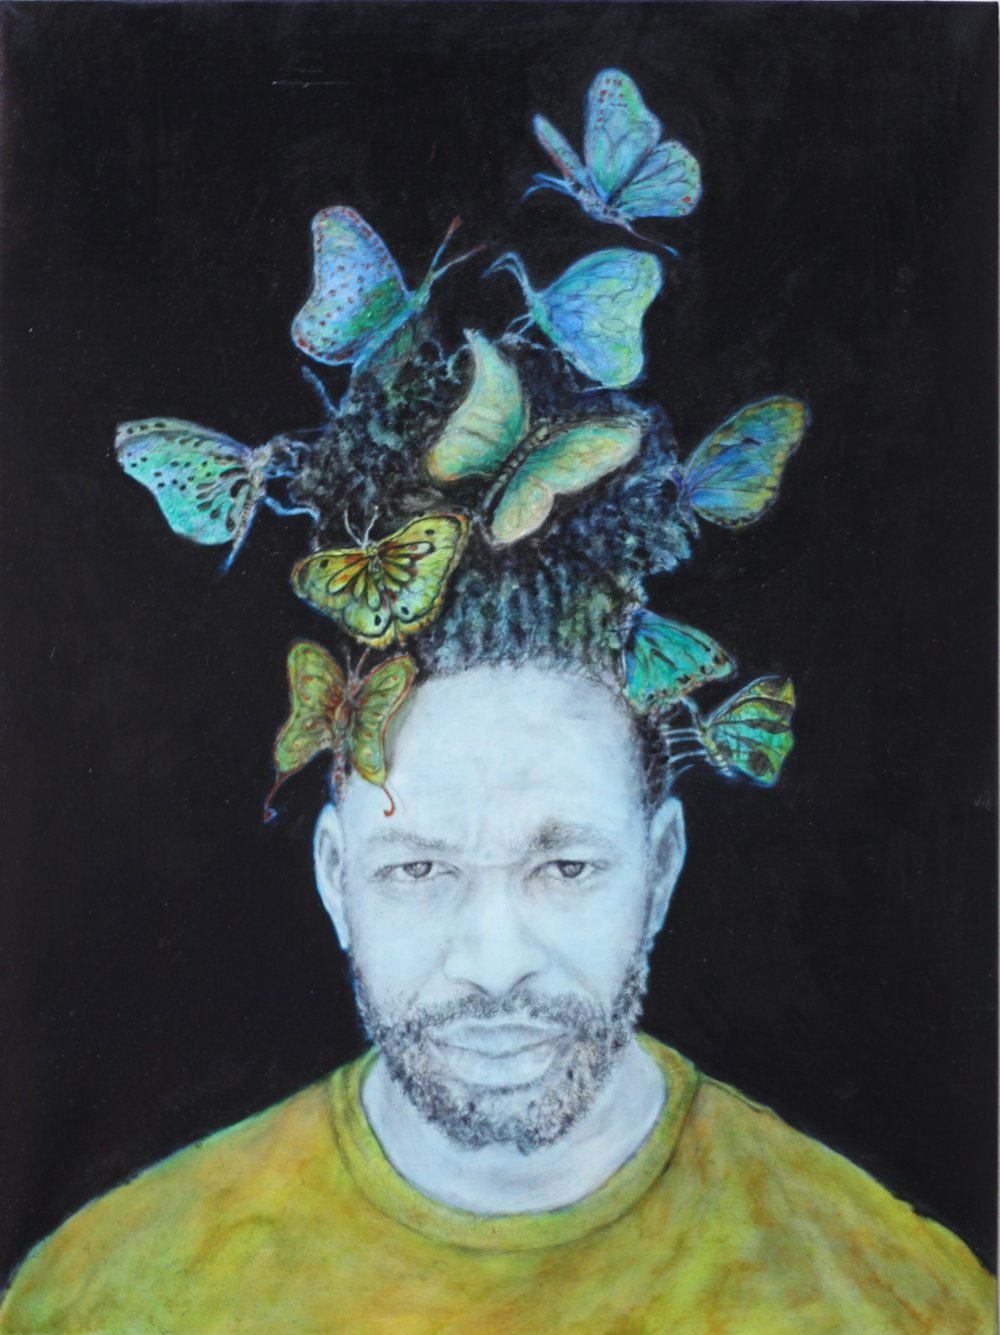 """Of Human Survival - Plight of the Butterflies"", 28""x24"", charcoal, graphite and oil on canvas on woodboard, 2018."